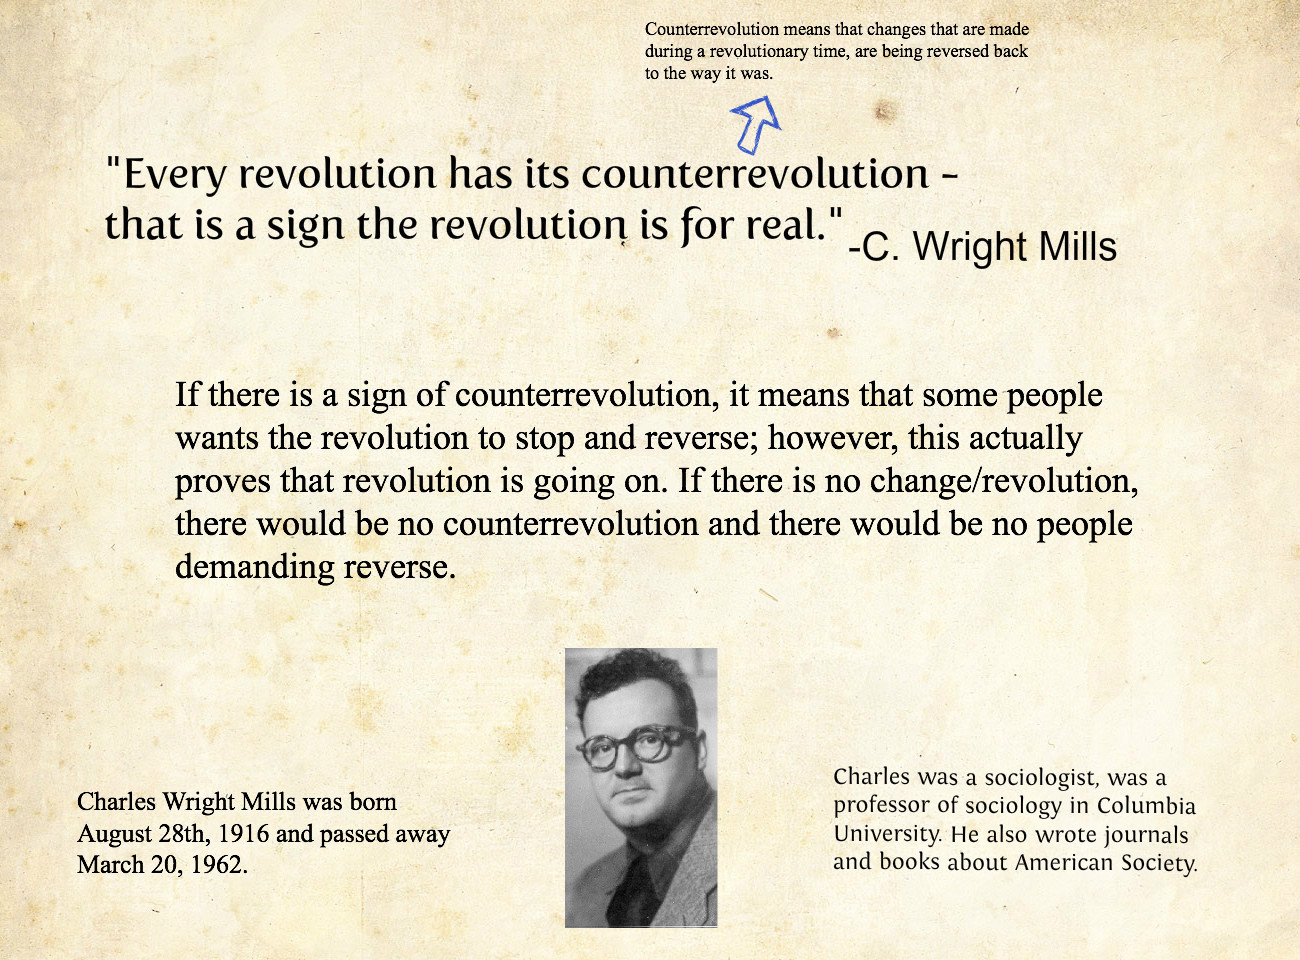 c wright mills sociological imagination C wright mills was sociologist best known for his controversial critiques of both contemporary society and sociological practice.